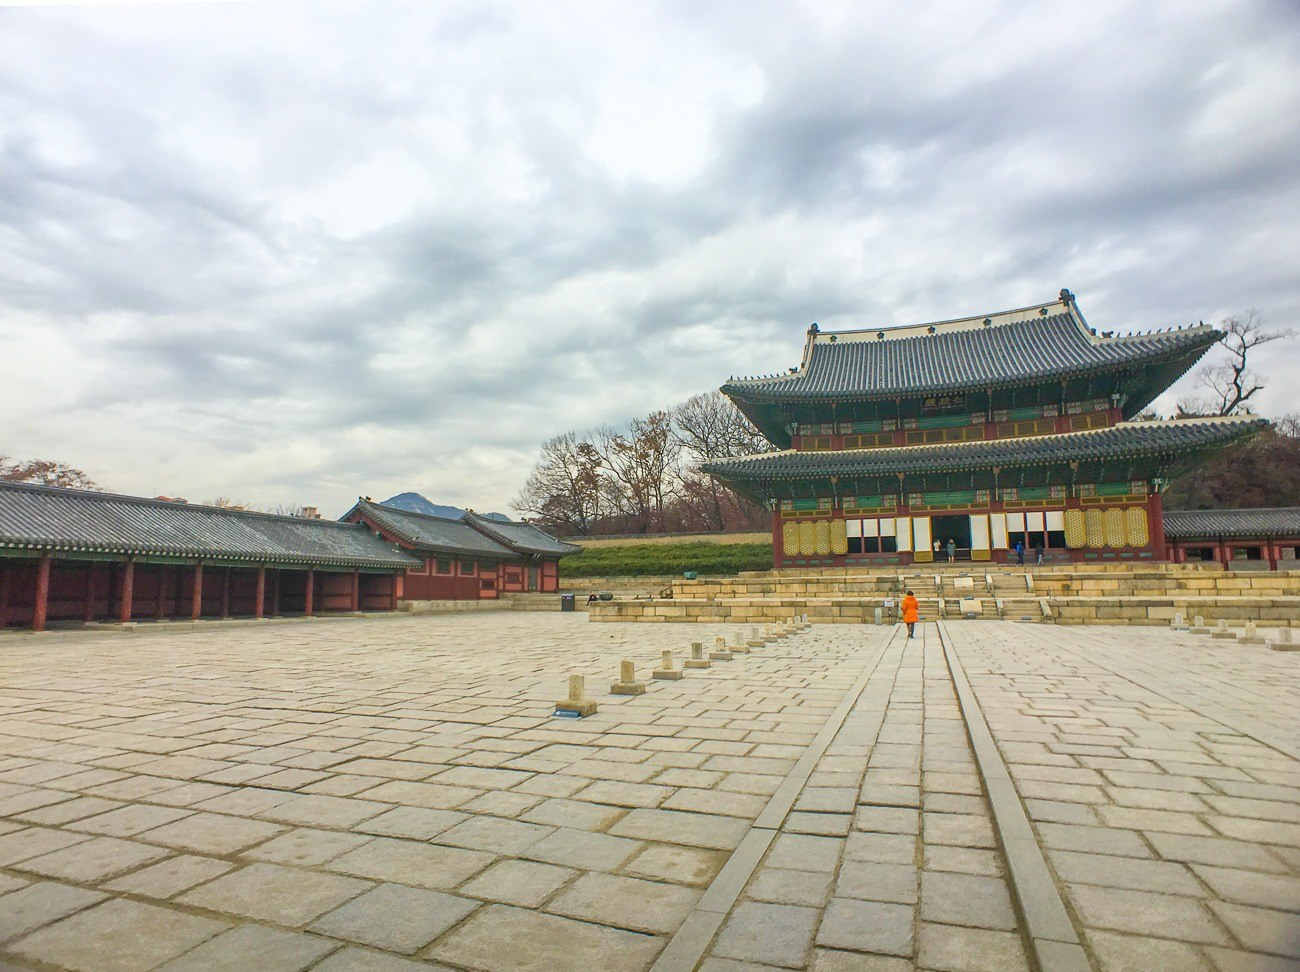 Changdeokgung Palace, a major Seoul attraction.